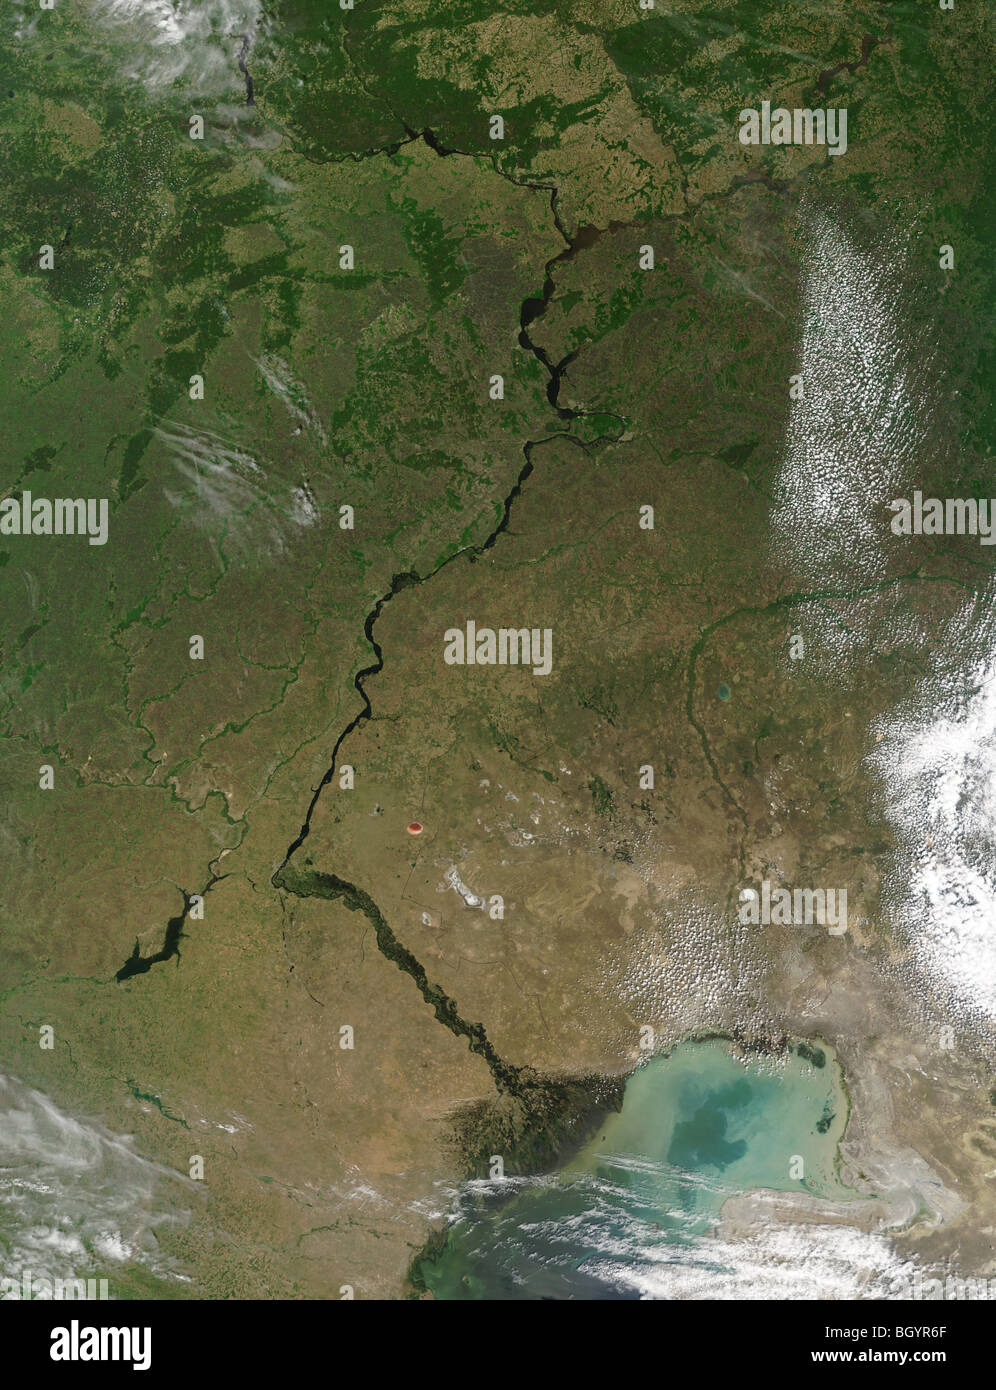 Satellite image of Russia credit NASA